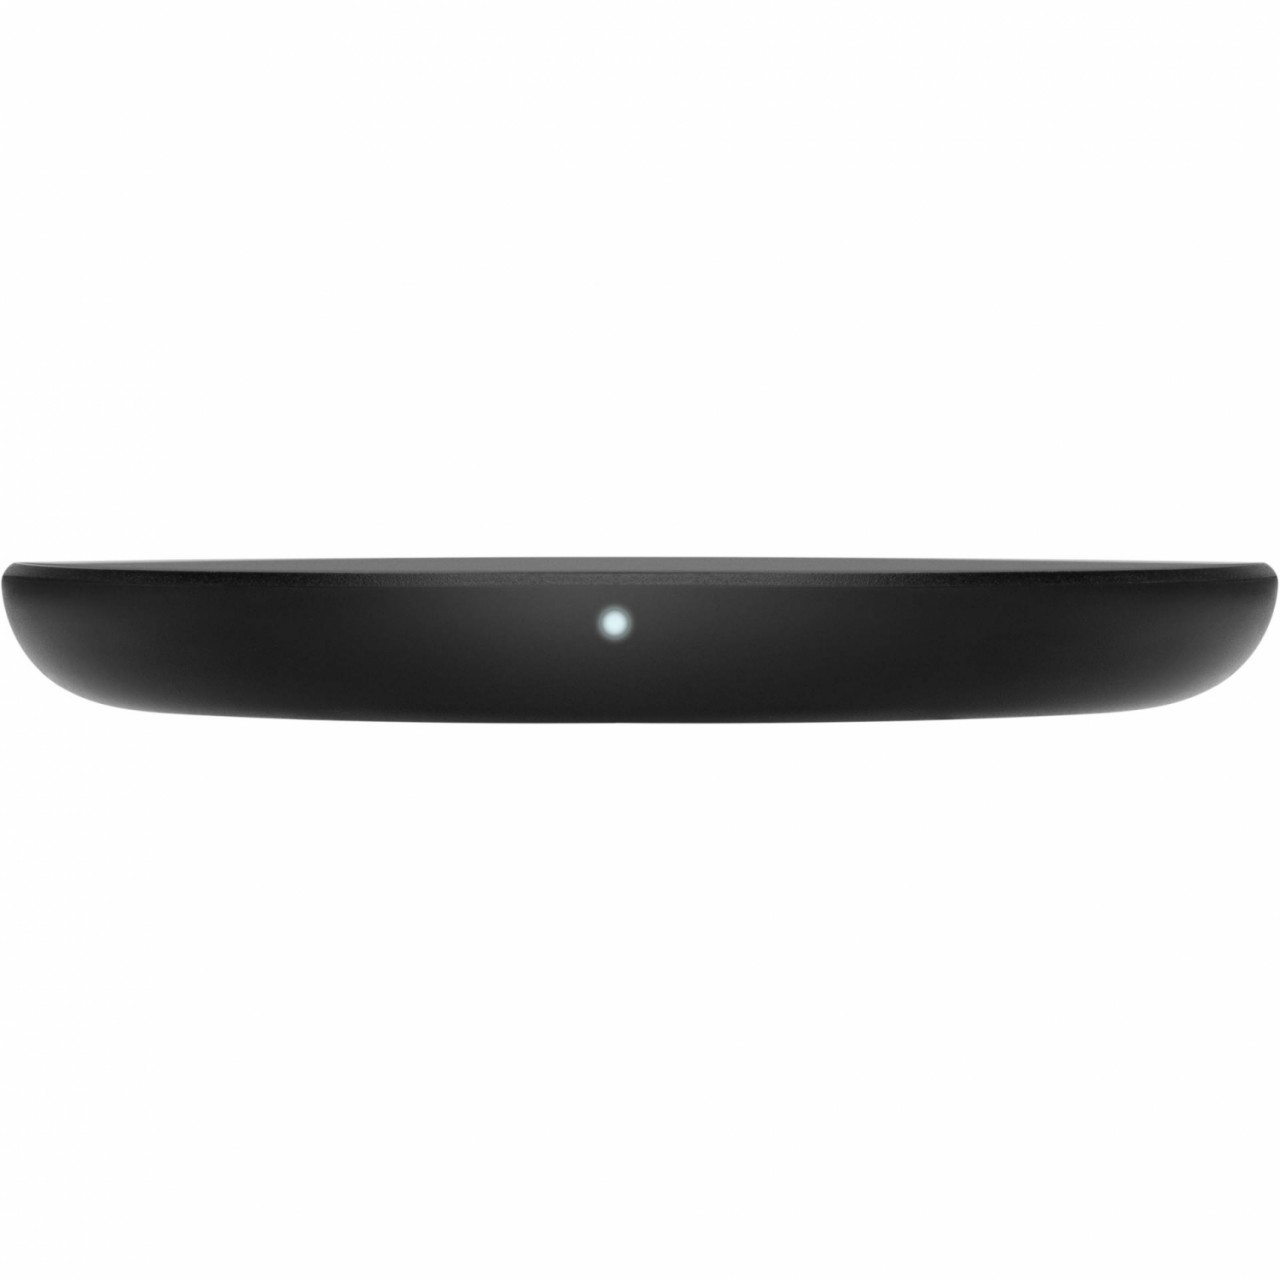 ACME CH302 Wireless charger, Qi certified